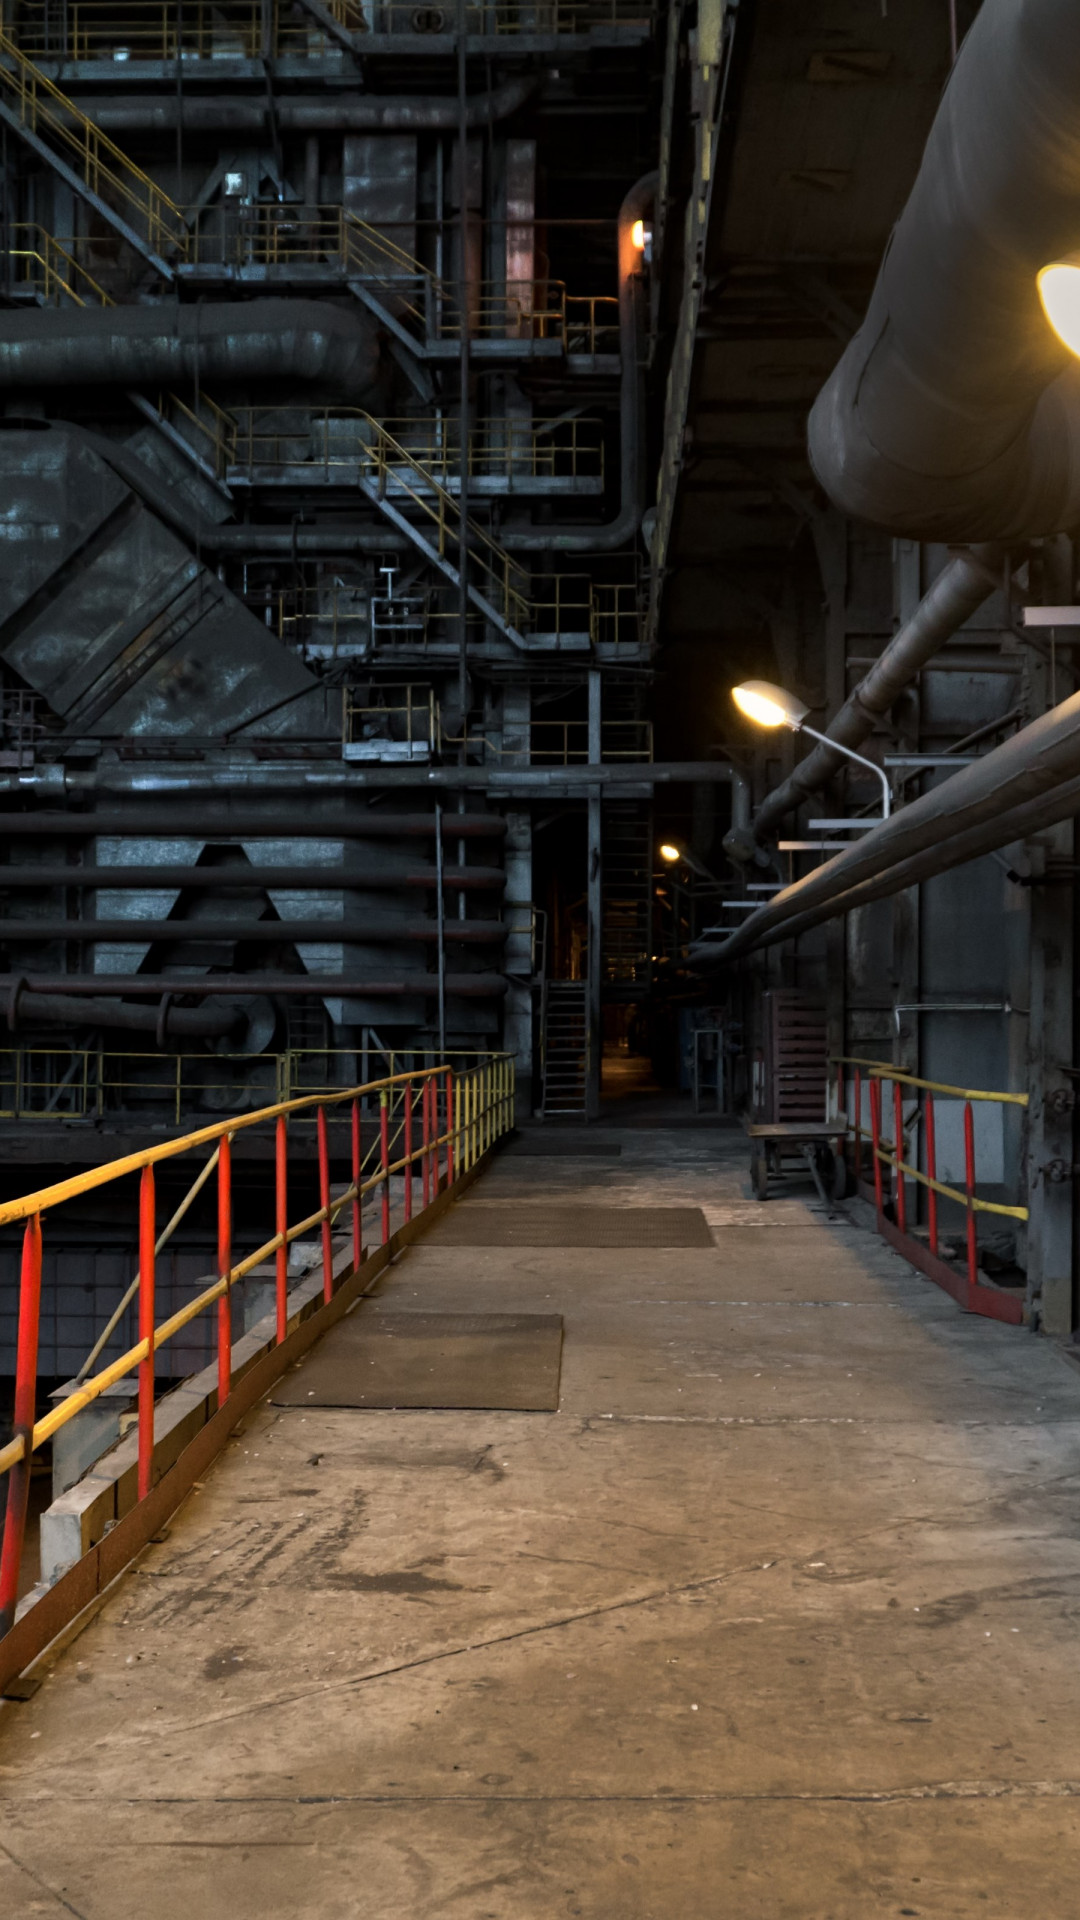 The inside of a power station wallpaper 1080x1920